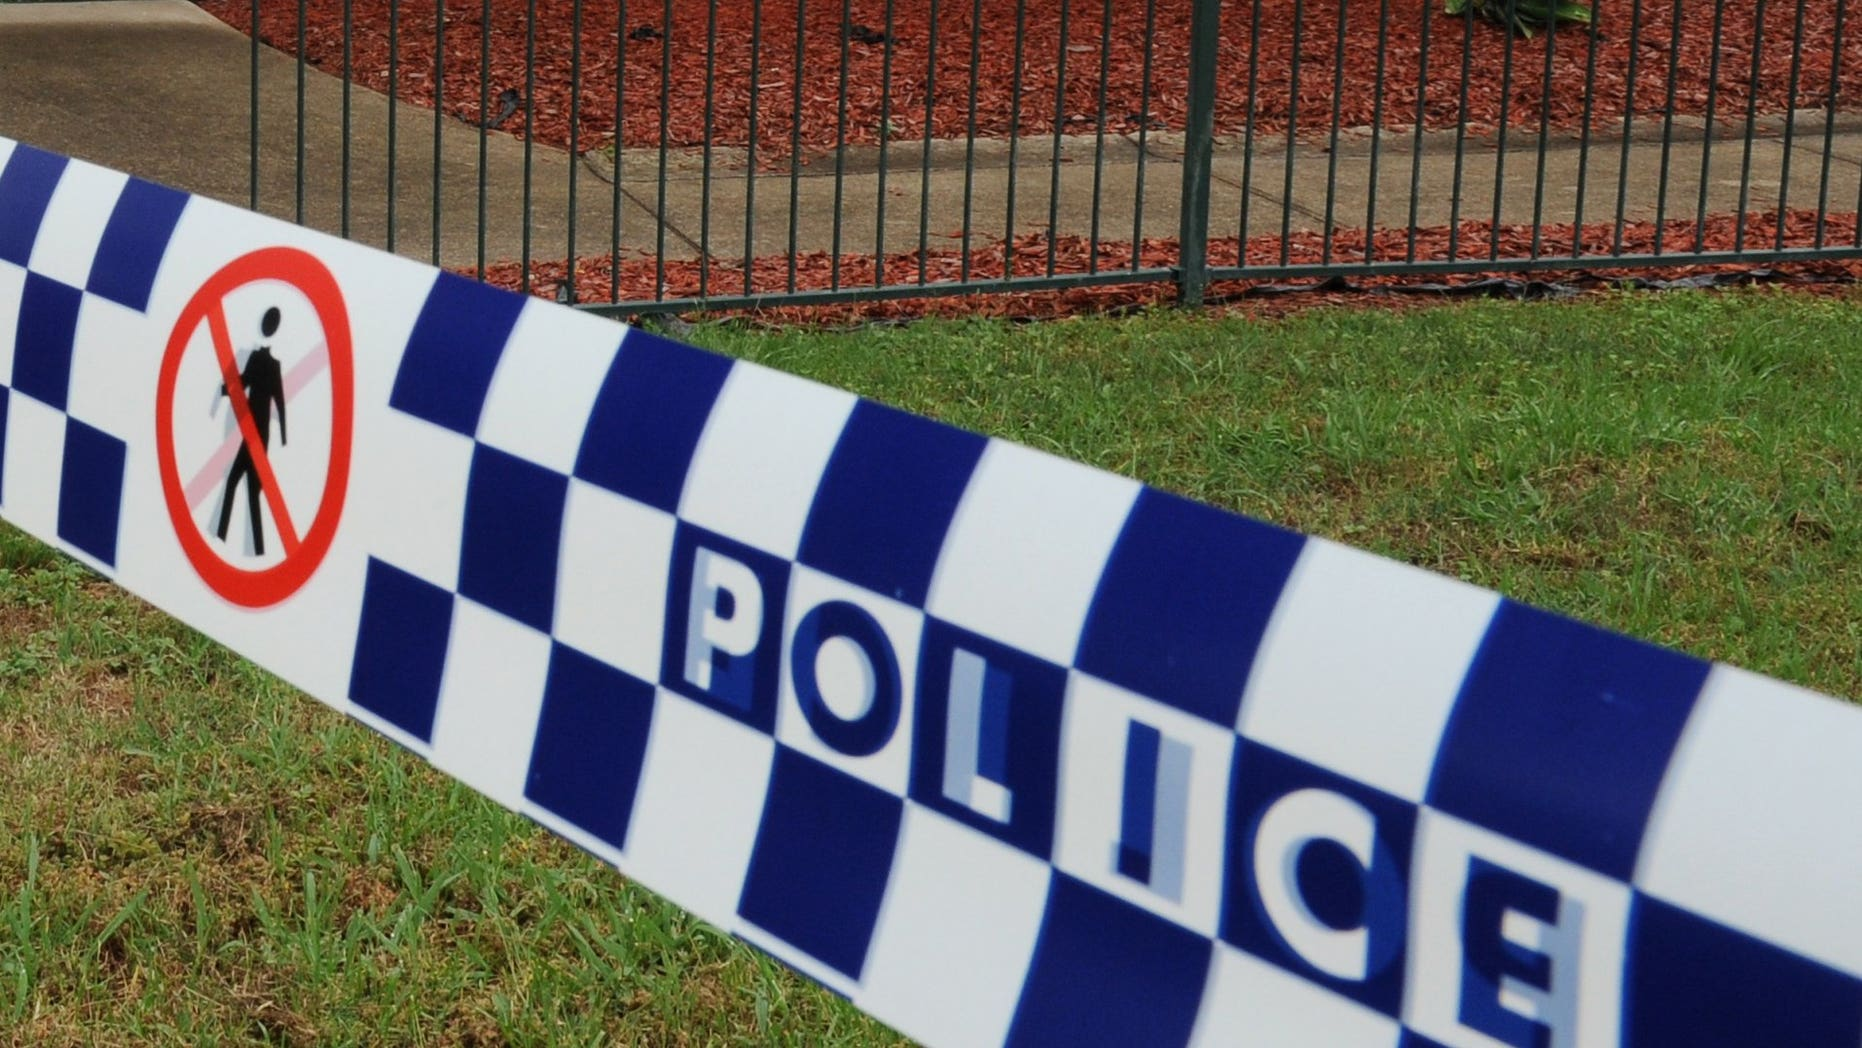 This file illustration photo shows a police tape cordoning off a crime scene near Sydney, in 2011. A two-year-old boy was mauled to death at his grandmother's house in a savage attack by a mastiff cross dog, Sunday afternoon at Deniliquin, in southwestern New South Wales.